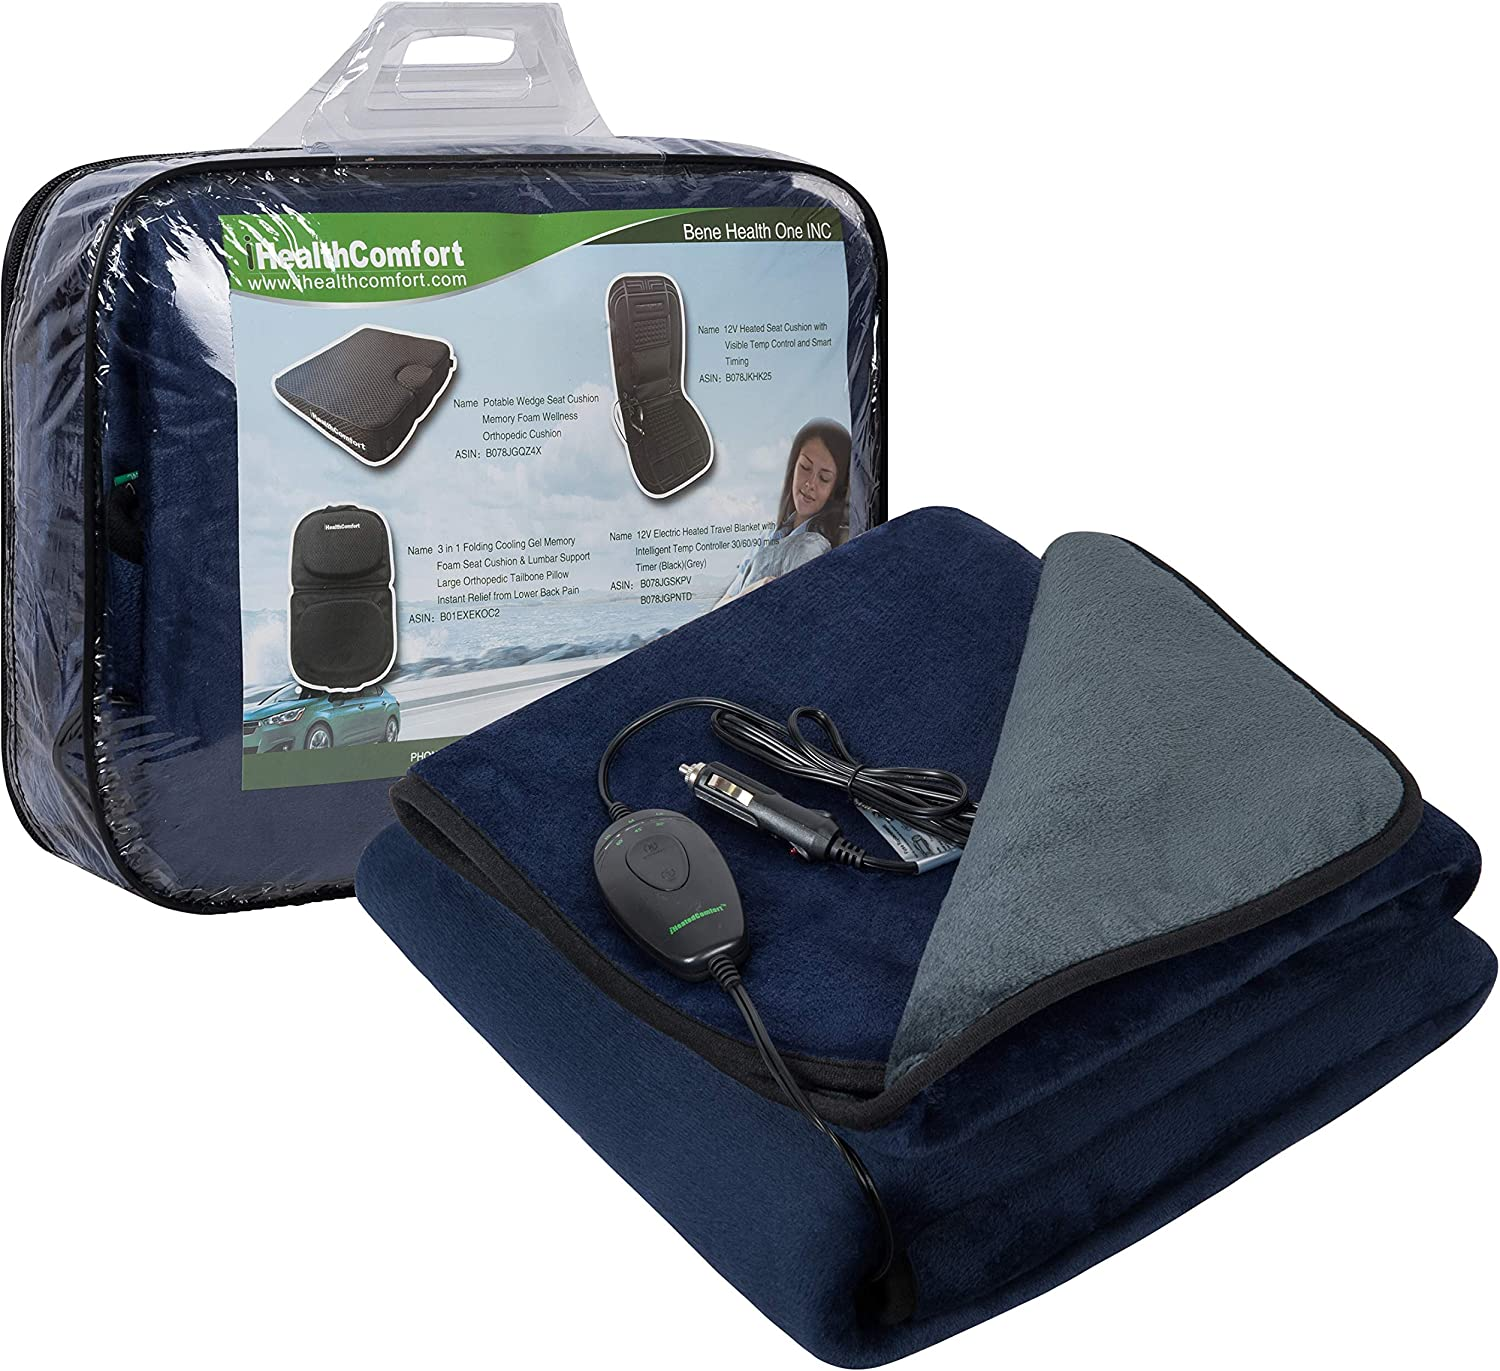 iHealthComfort 12V Electric Heated Travel Blanket with Intelligent Temp Controller 30/60/90 mins Timer Navy and Grey